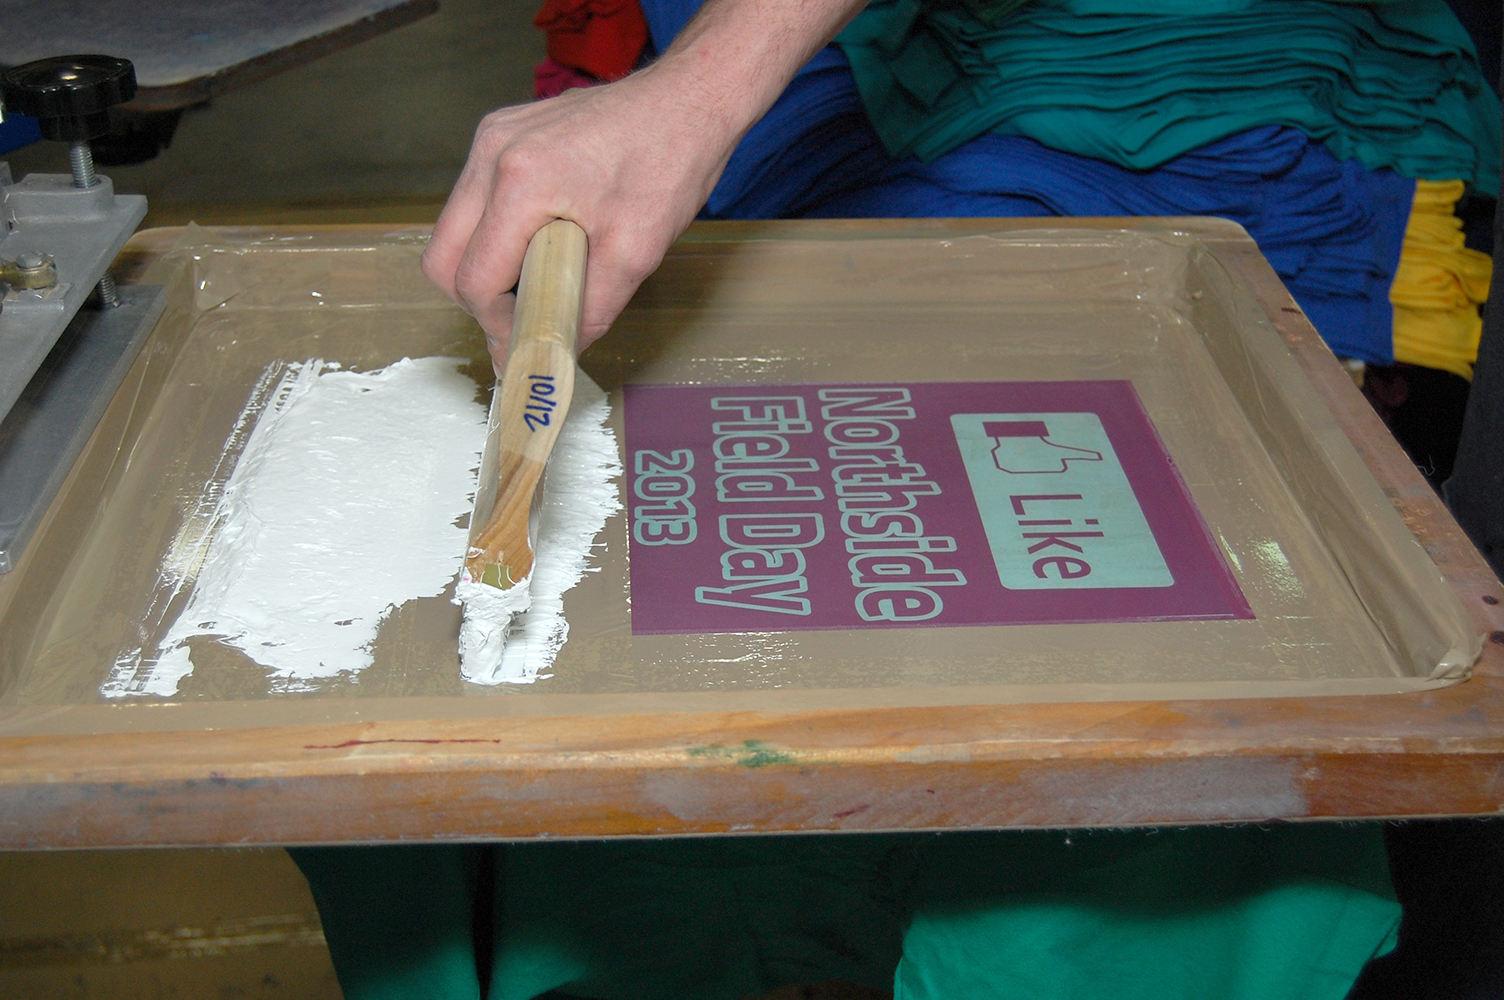 School shirt design your own - The Next Stop For Your Order Is Our Screen Printing Department School Tee Factory Hand Prints Every Item Using The Traditional Direct Screen Printing